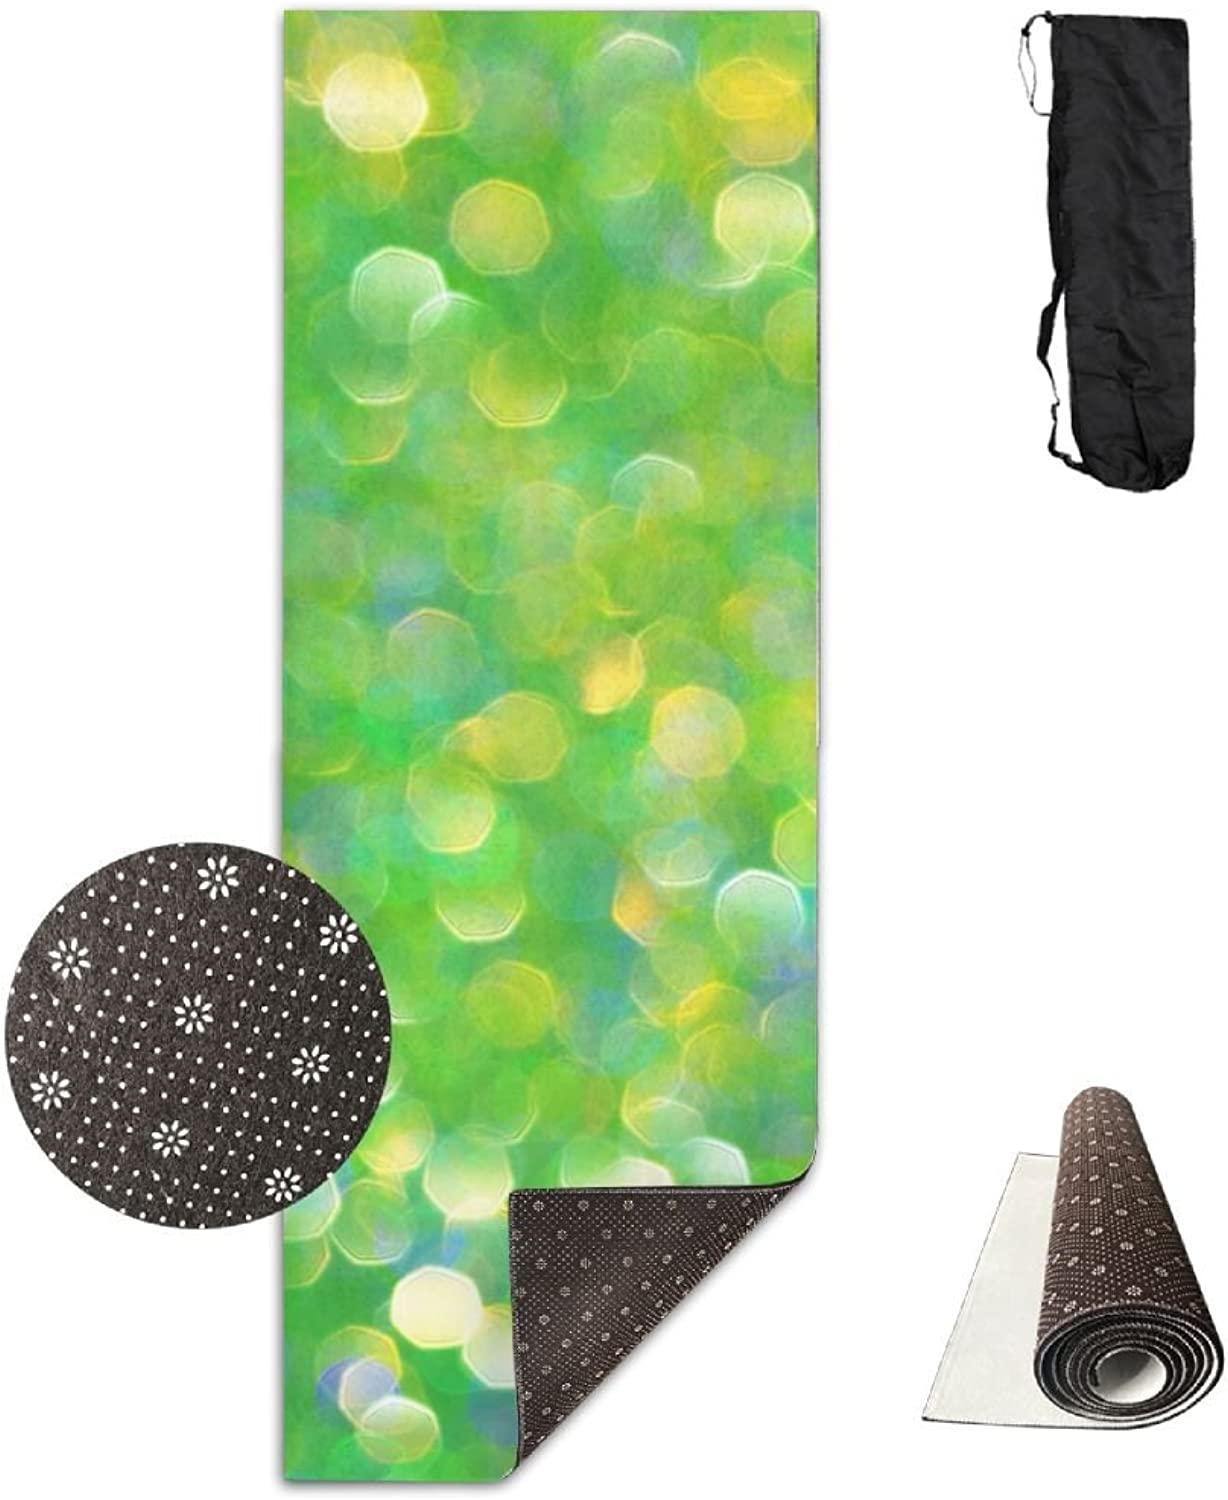 Gym Mat Green Fitness High Density AntiTear Exercise Yoga Mat With Carrying Bag For Exercise,Pilates